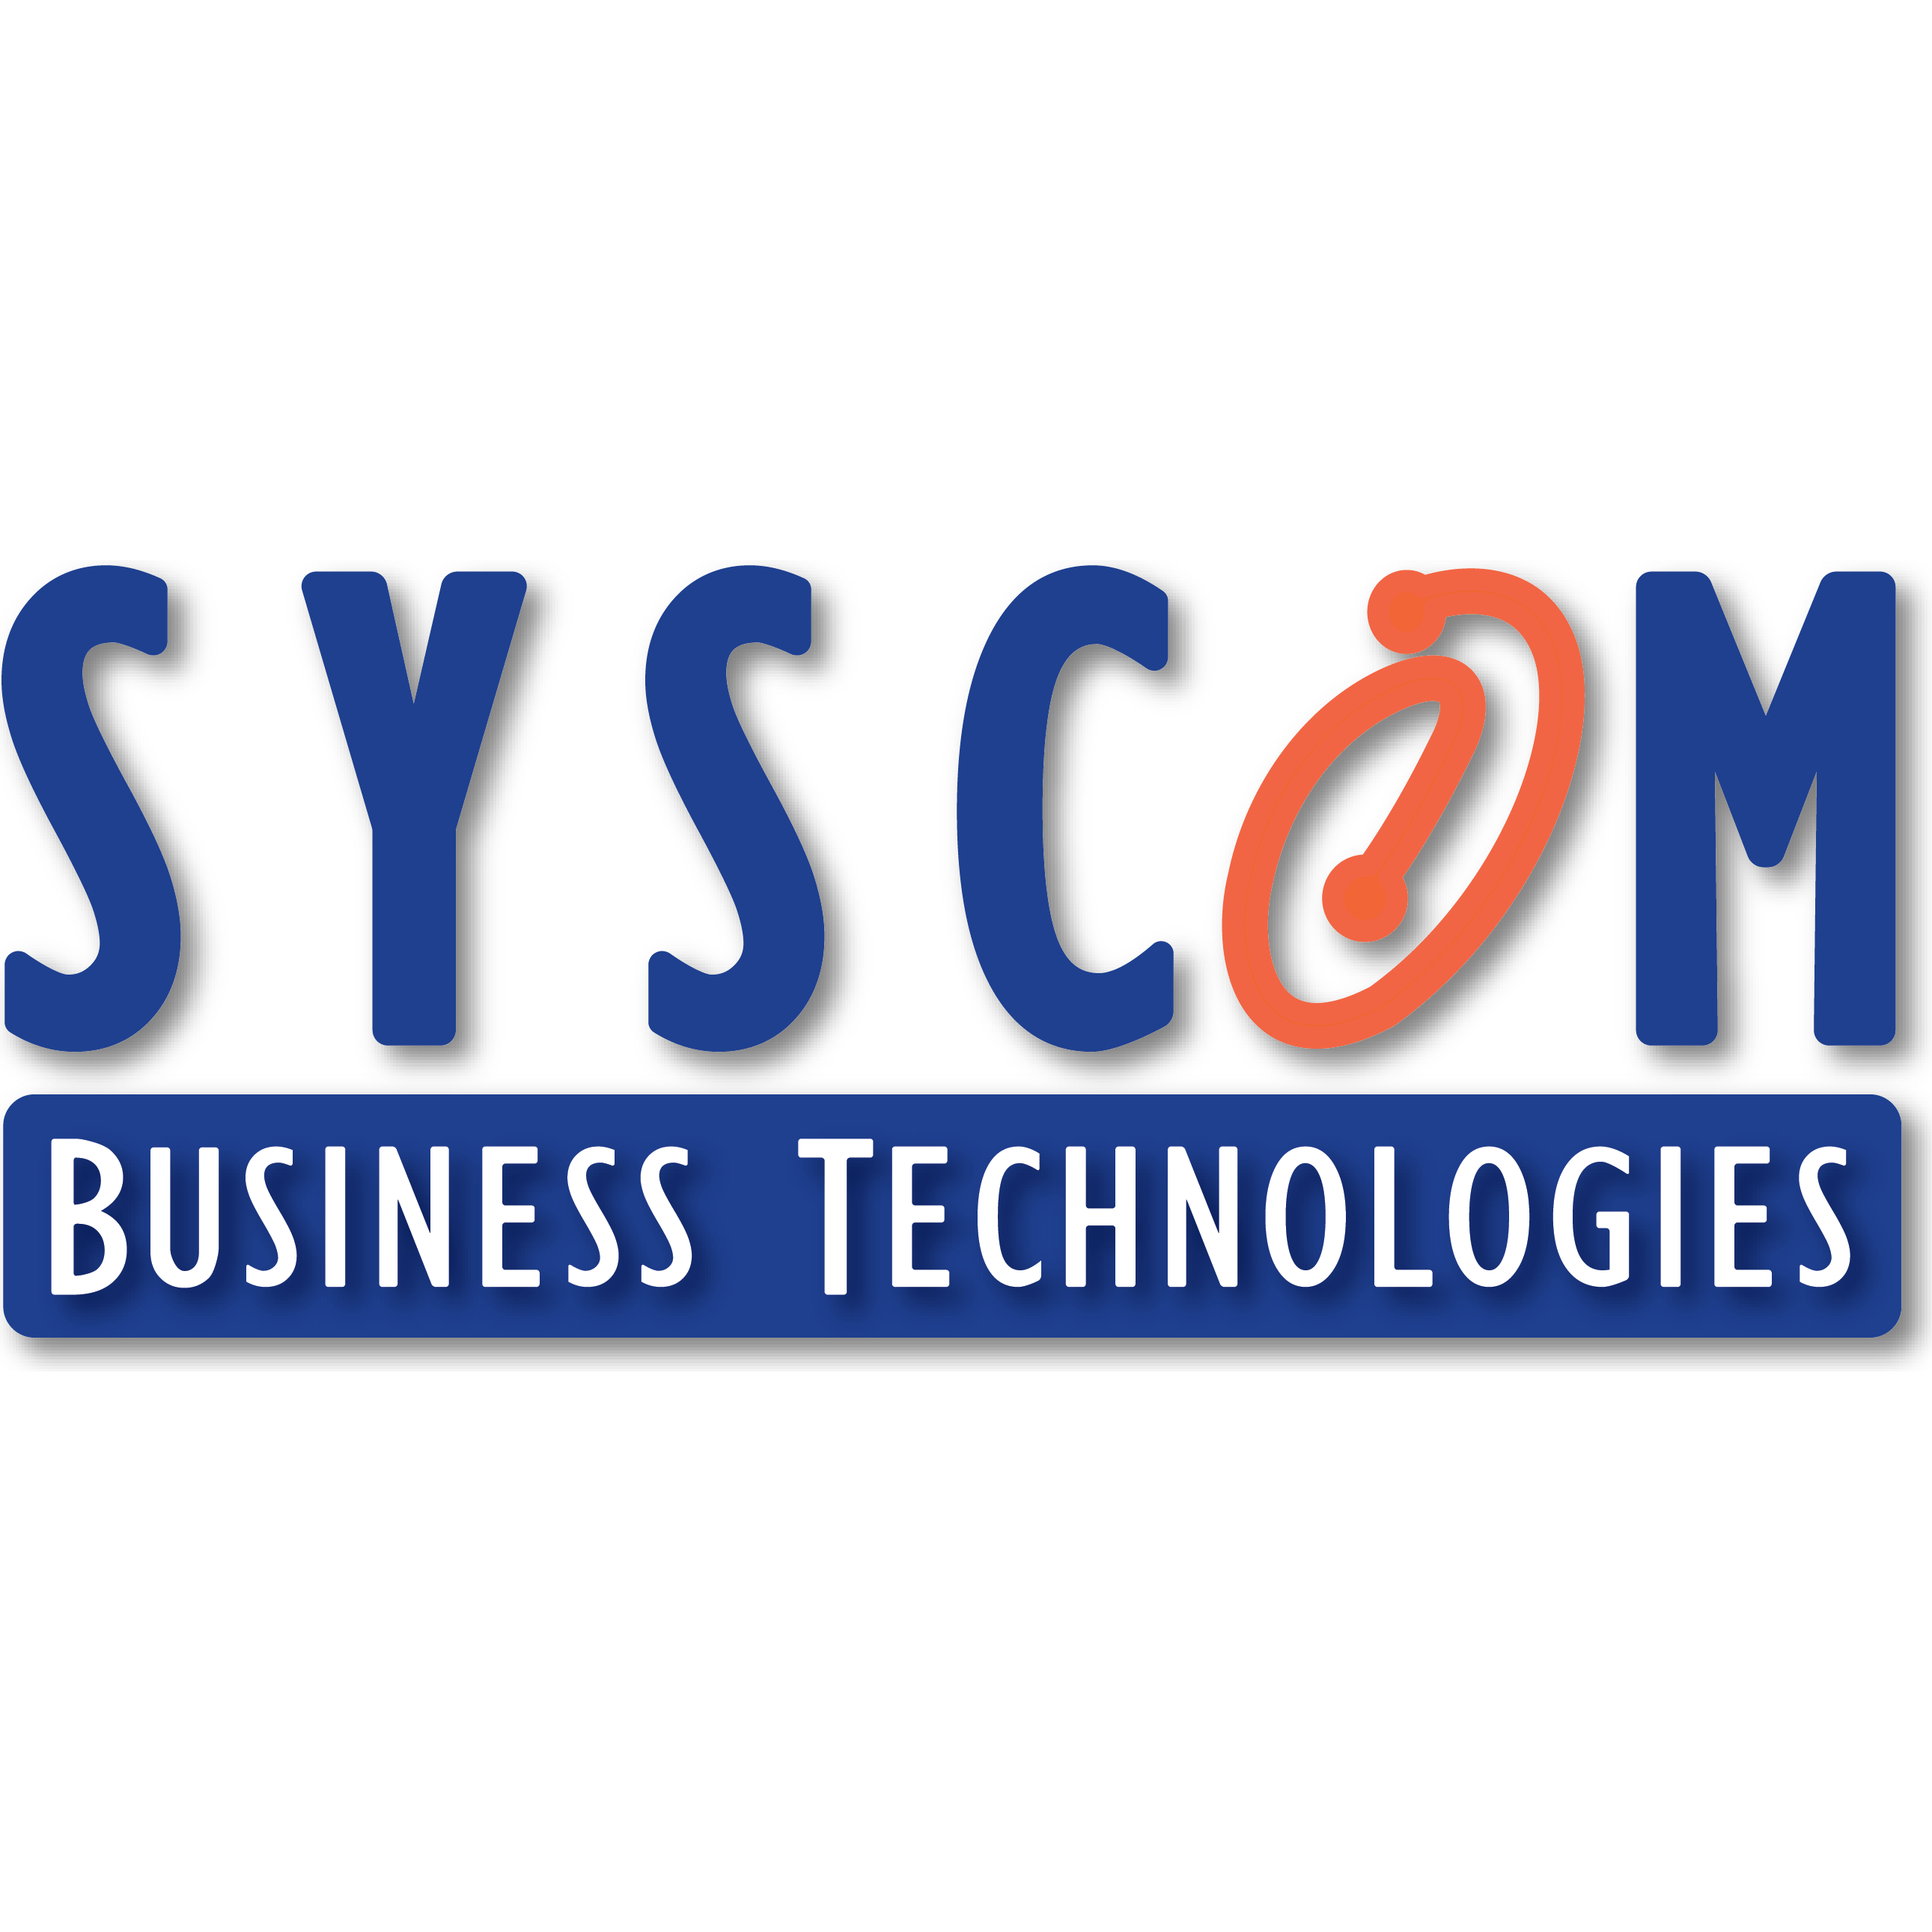 Syscom Business Technologies image 0